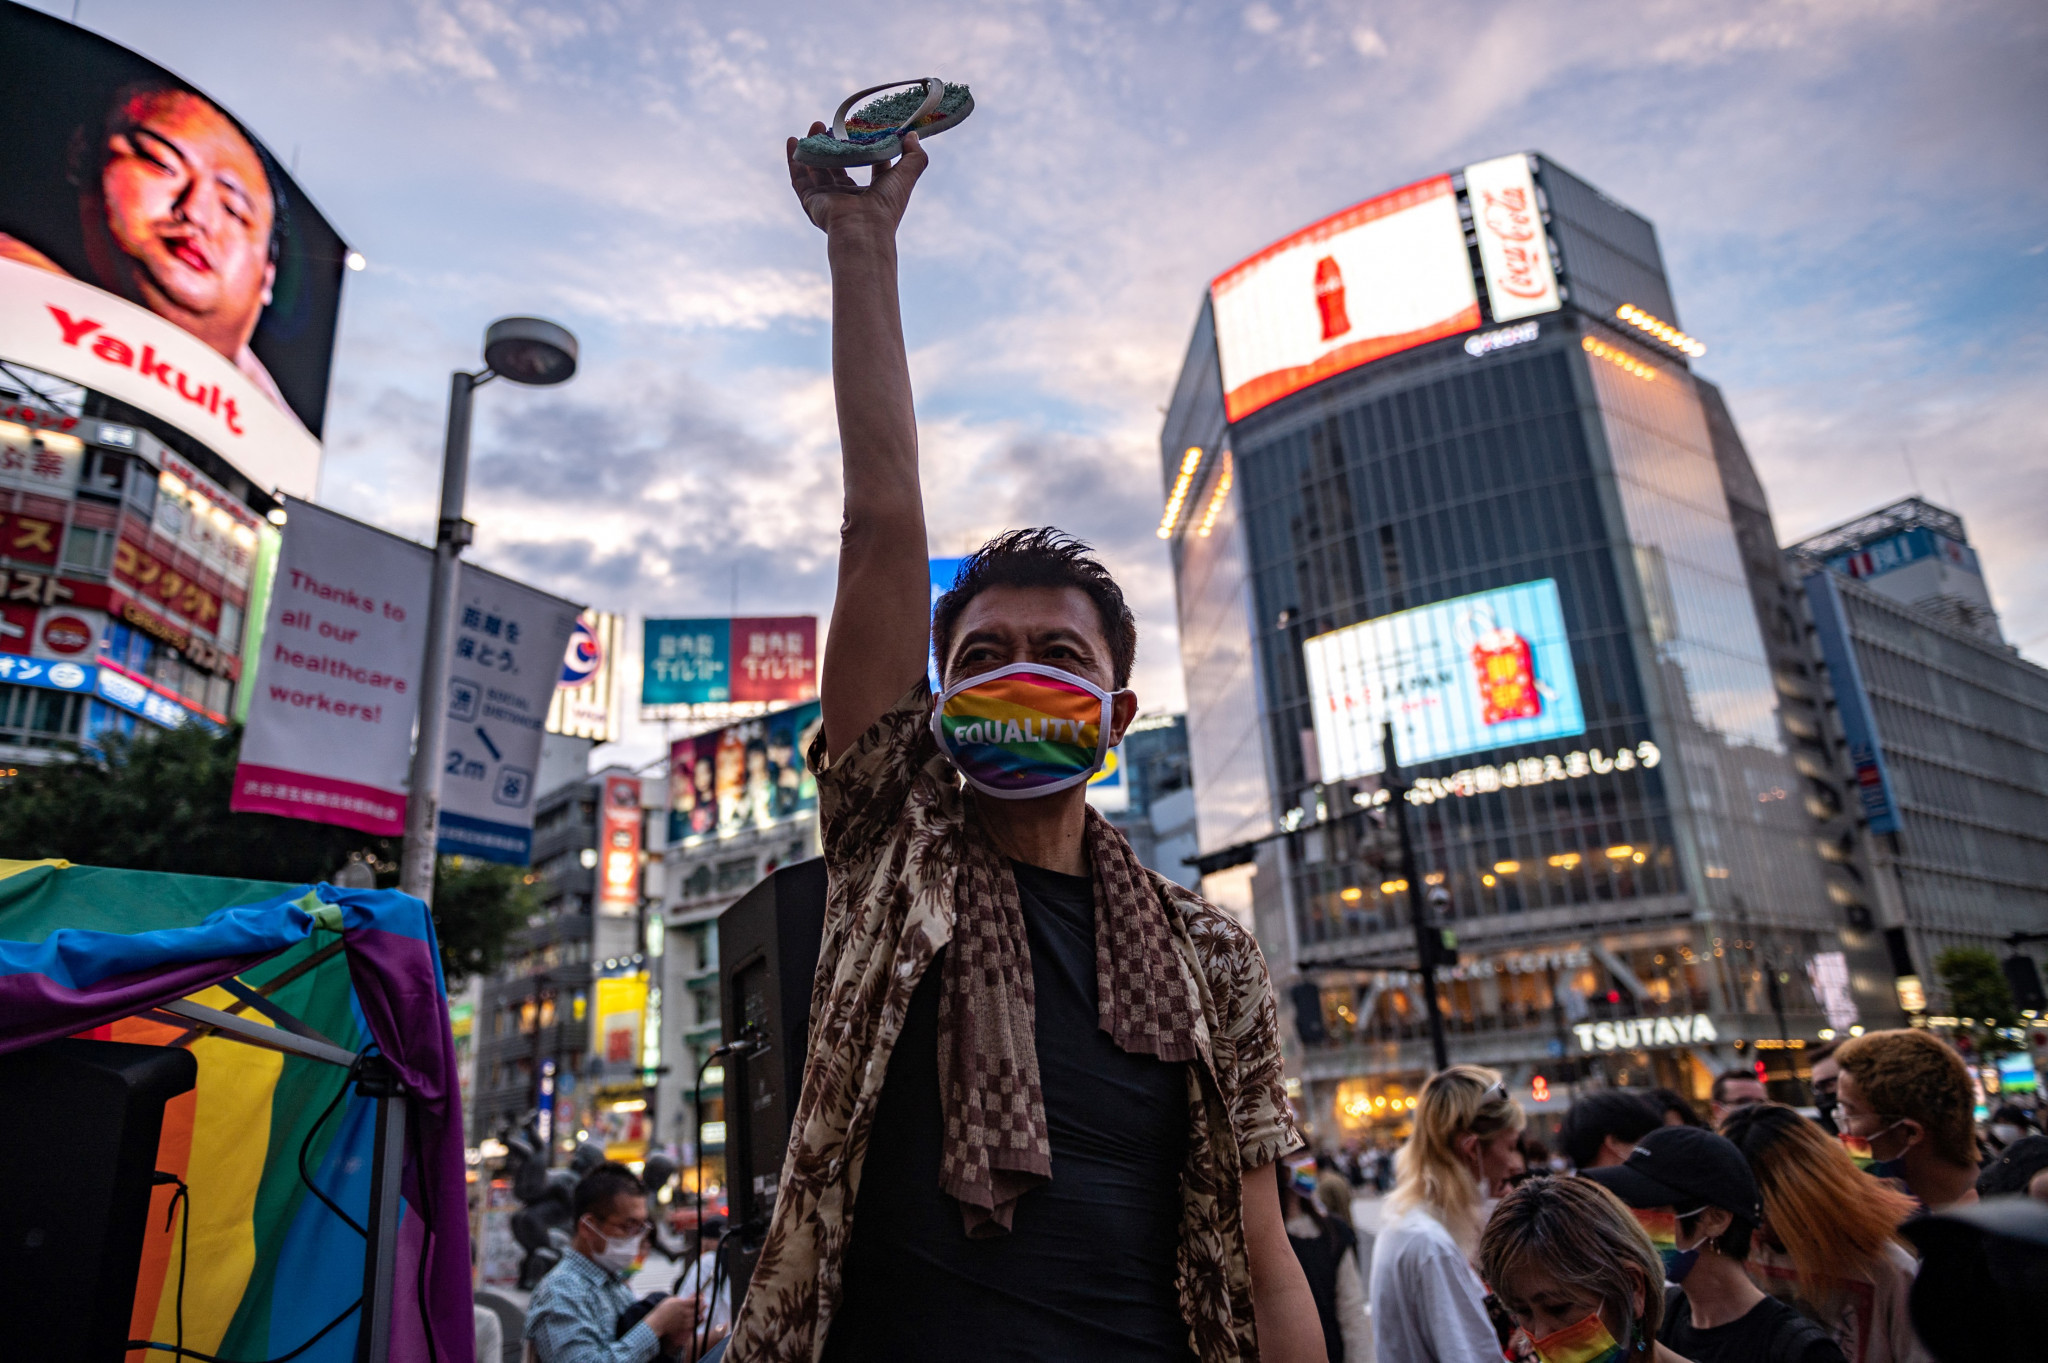 Japan's LGBTQ rights record has been criticised by community campaigners ©Getty Images